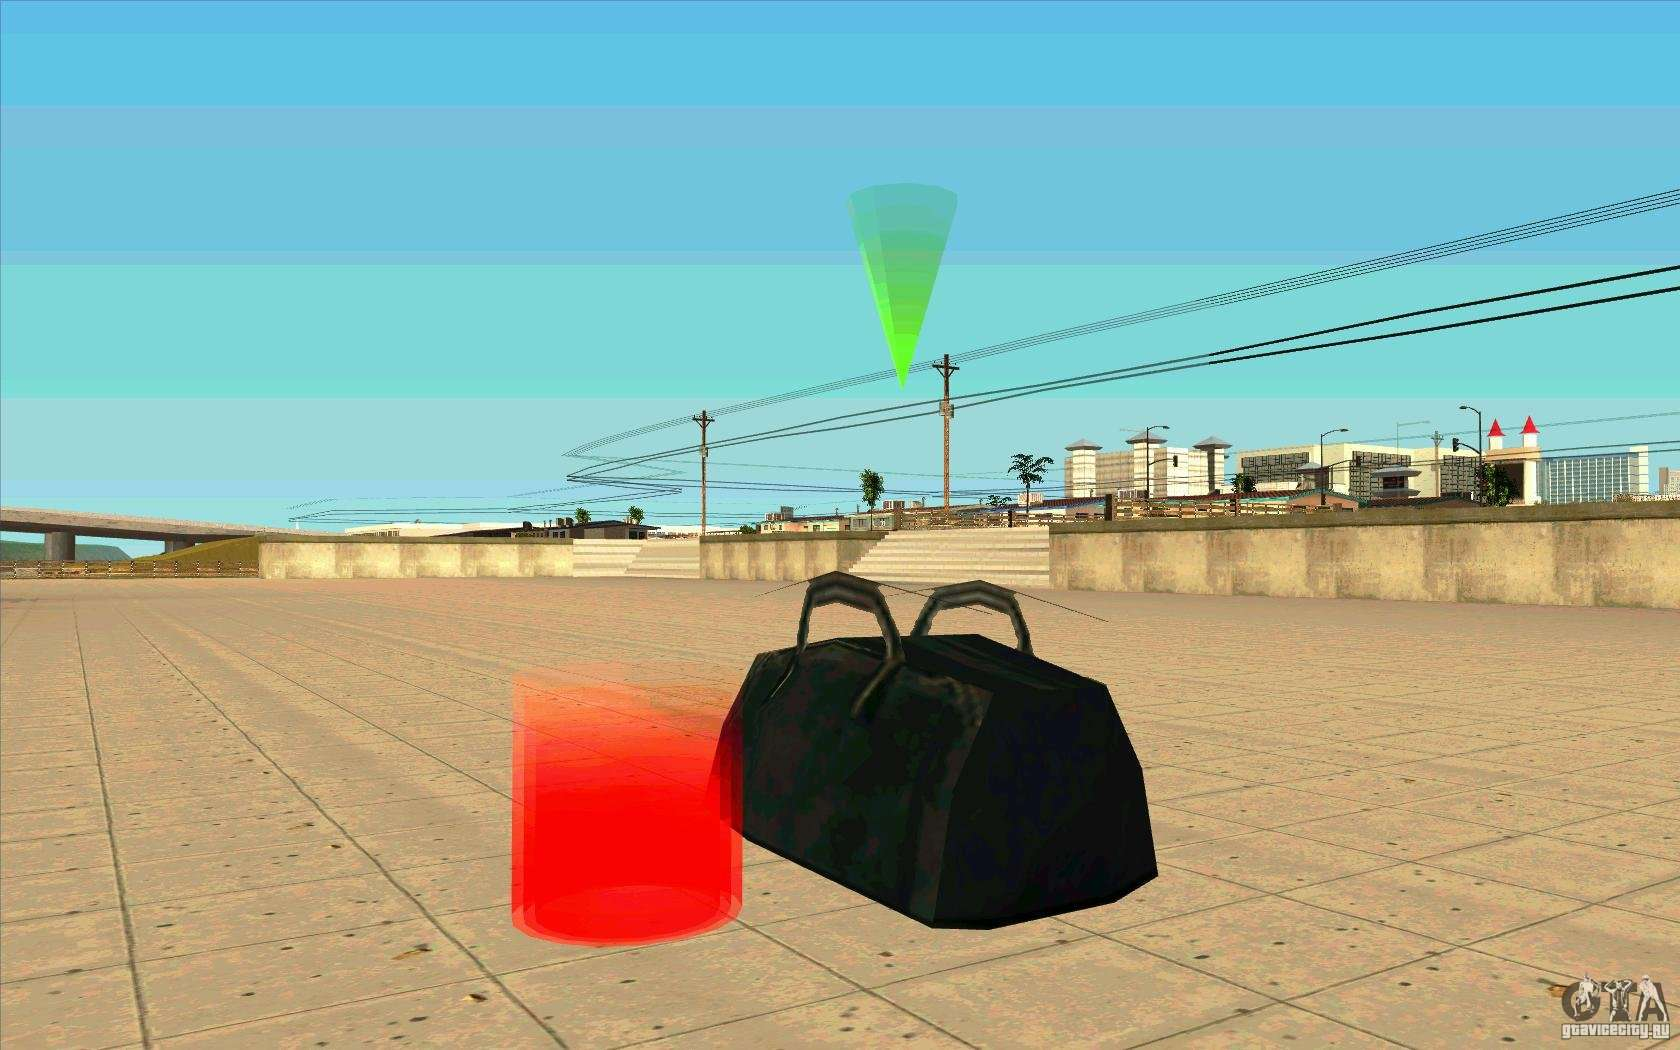 gta cheats vice city helicopter with 10725 Usaf Cargo on 73414 Hughes Oh 6 Cayuse additionally 71689 Bell Uh 1d Huey Bundeswehr besides Watch as well 31133 Team Xpg Gta V Trainer 9 likewise Download Gta Vice City Cheat Codes List.